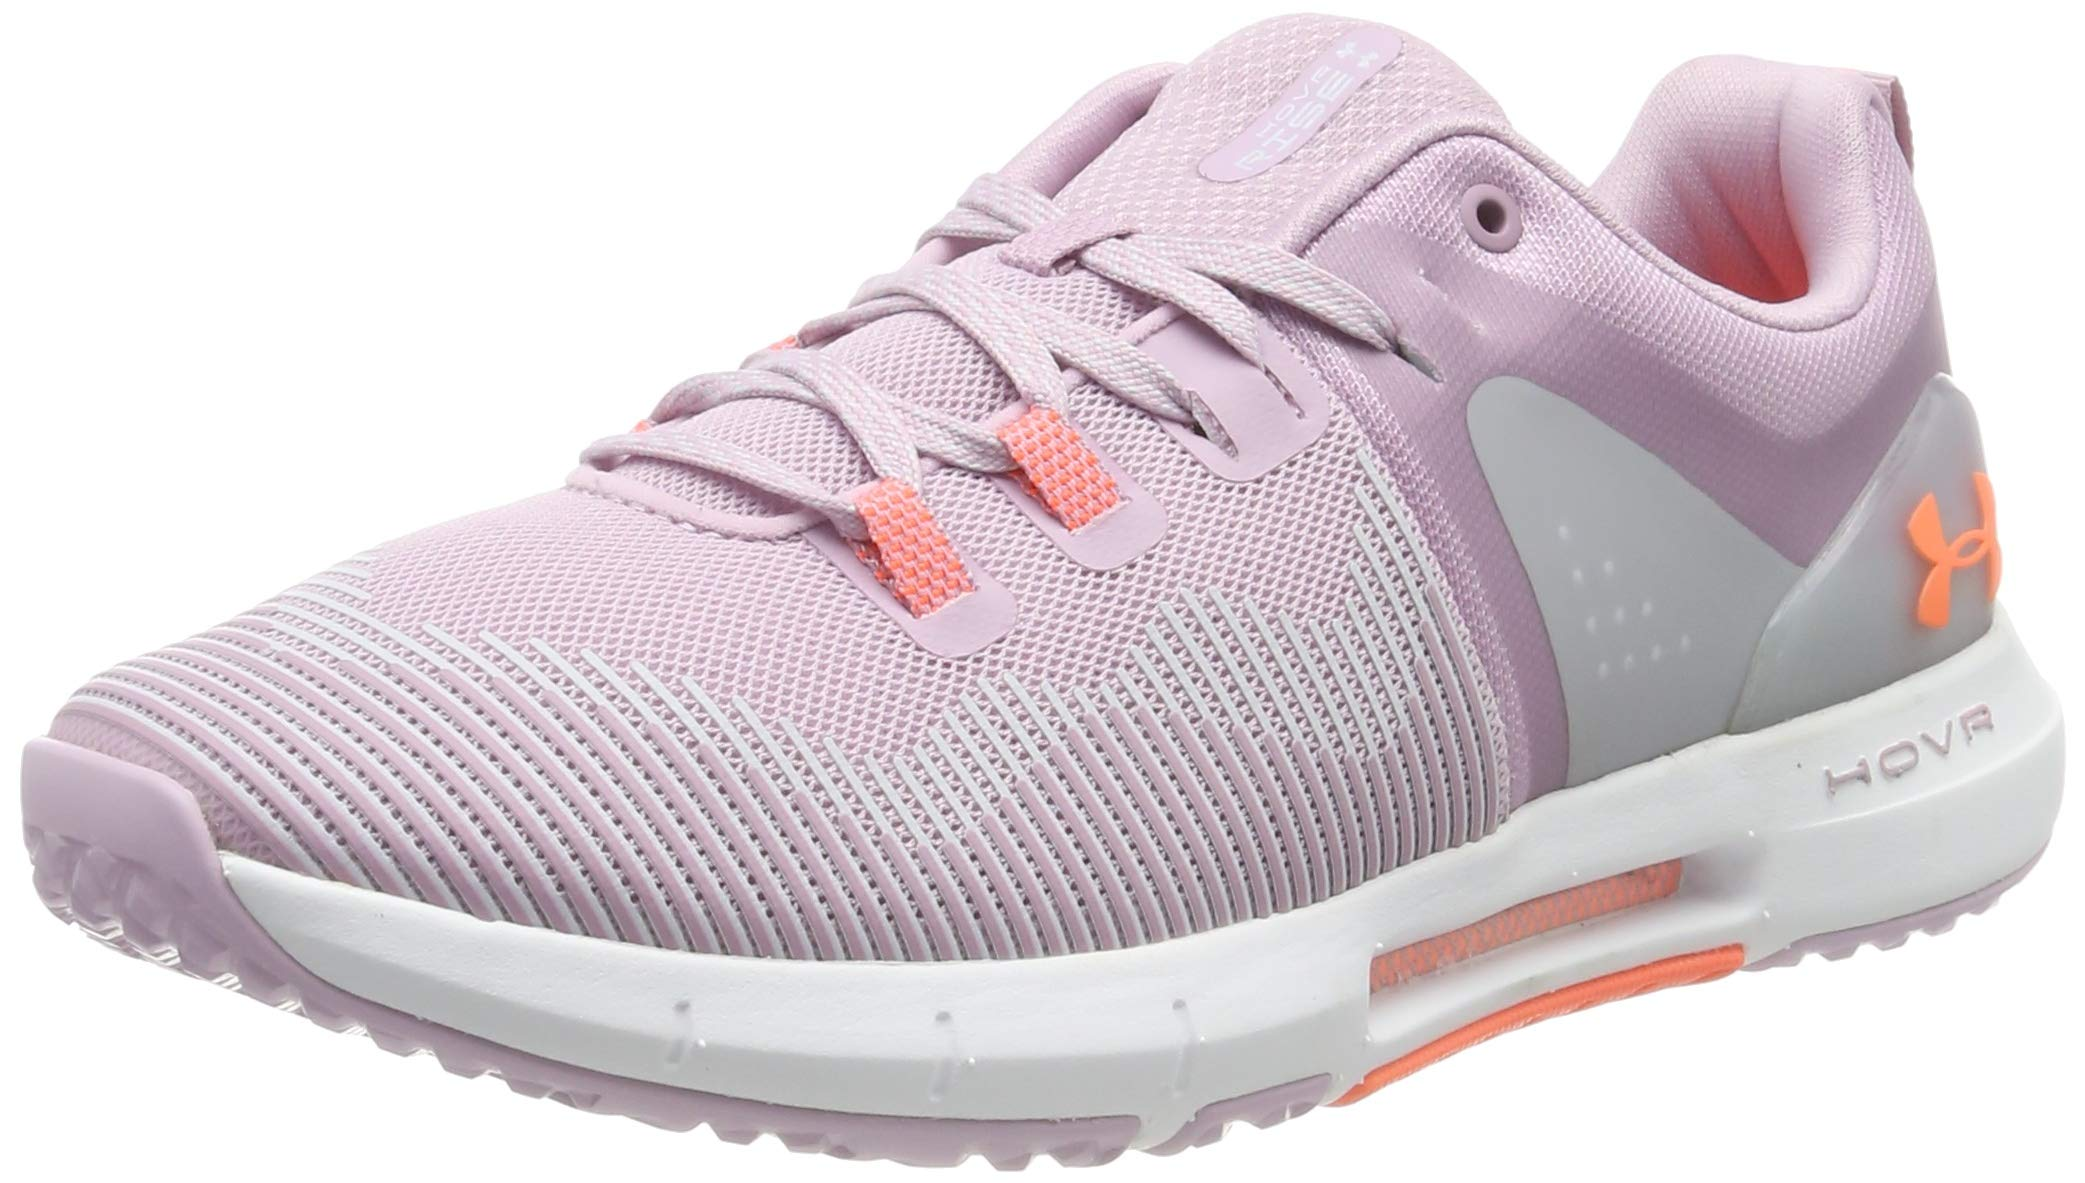 Under Armour Women's HOVR Rise Cross Trainer, Pink Fog (601)/White, 8.5 by Under Armour